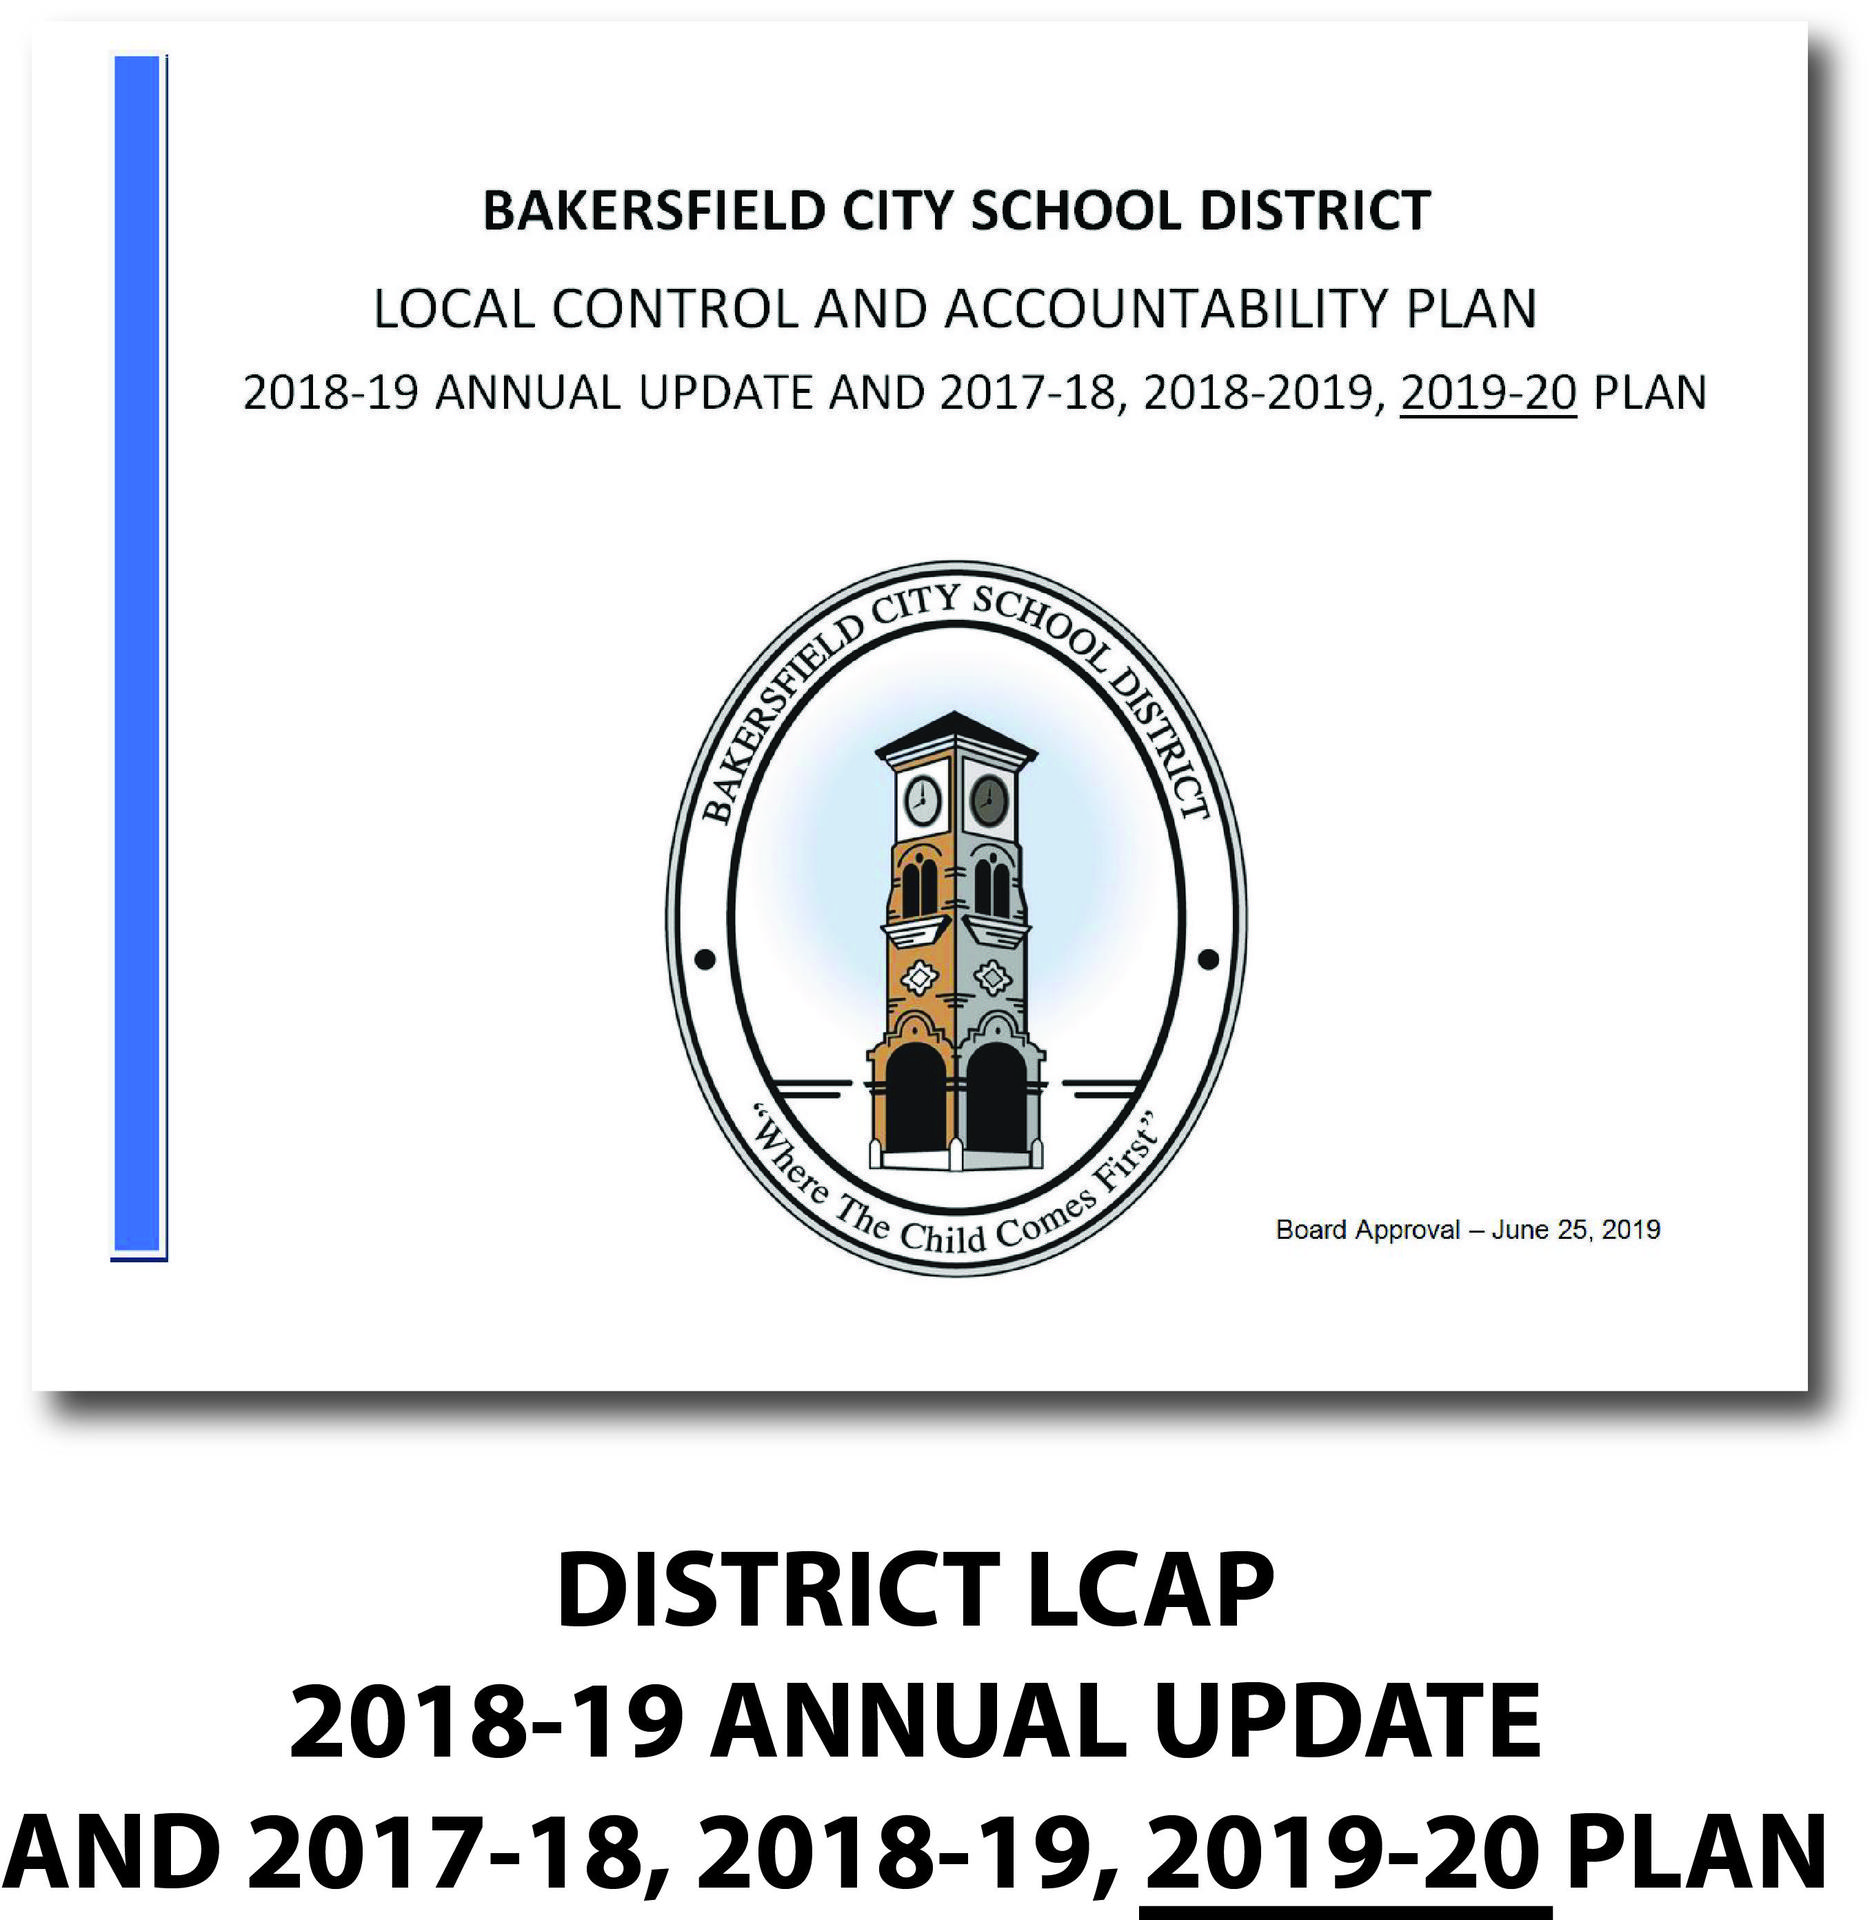 LCAP 2018-19 Annual Update and 2017-18 2018-19 2019-20 Plan